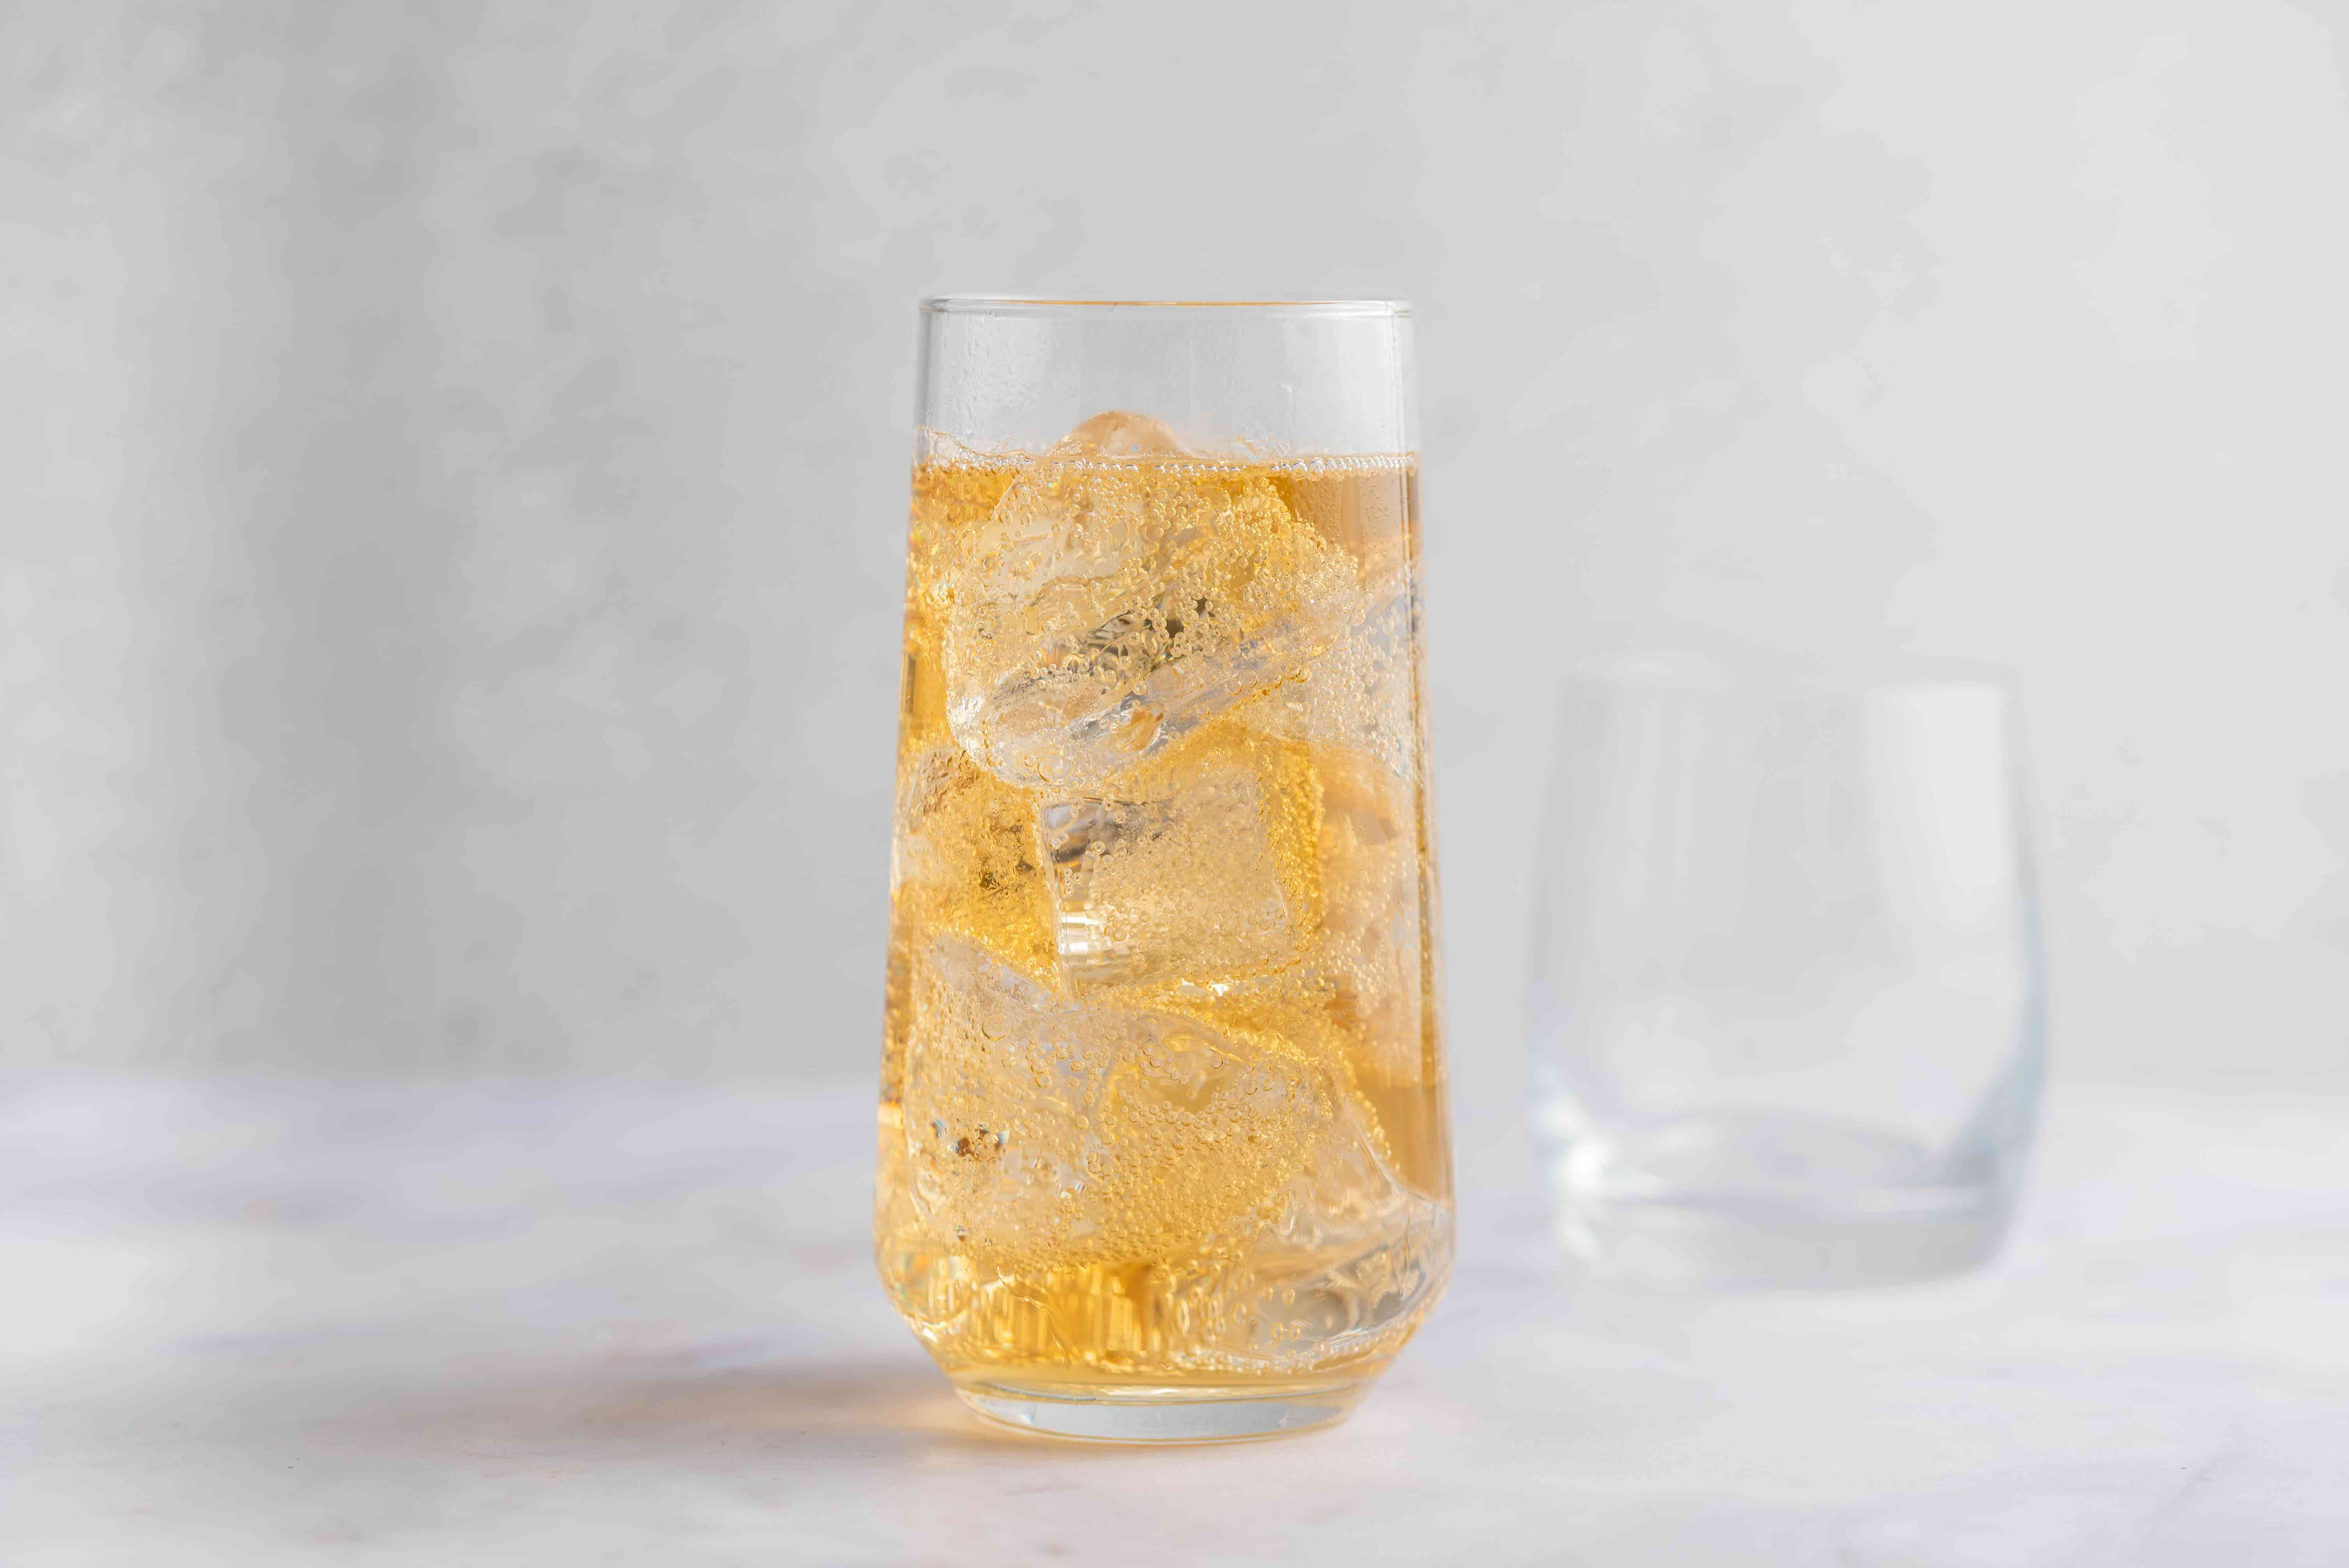 Fill glass with ginger ale